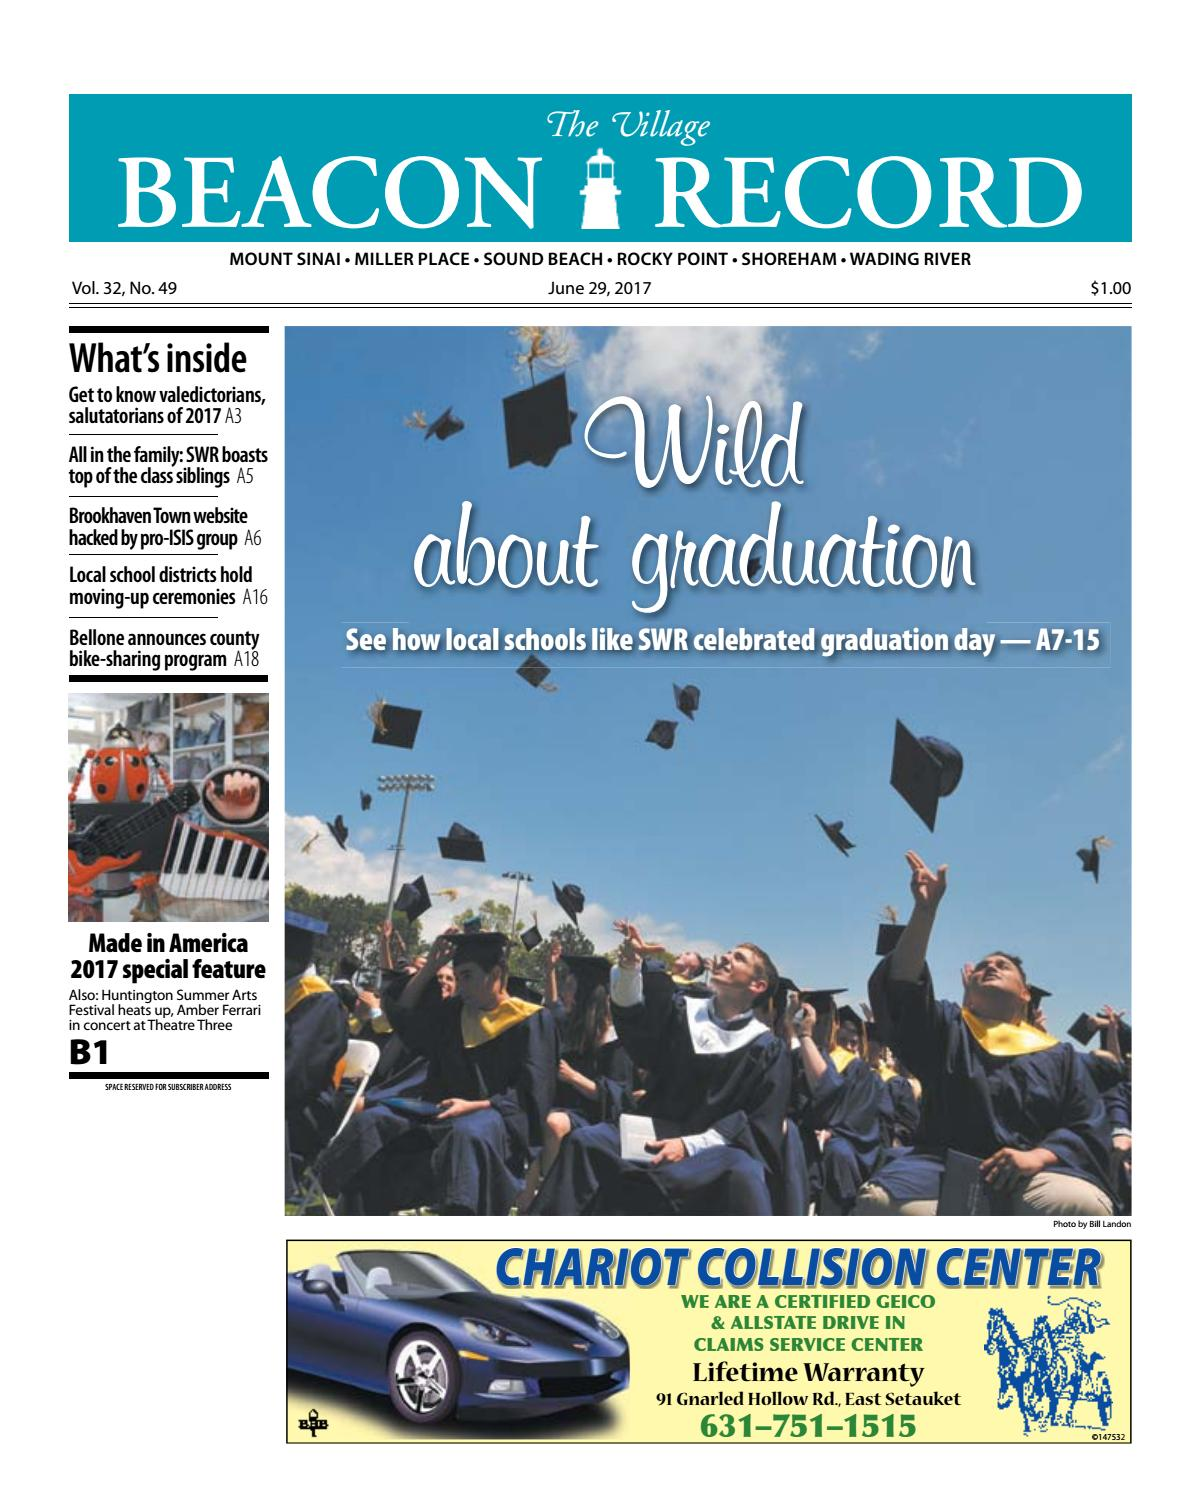 The Village Beacon Record - June 29, 2017 by TBR News Media